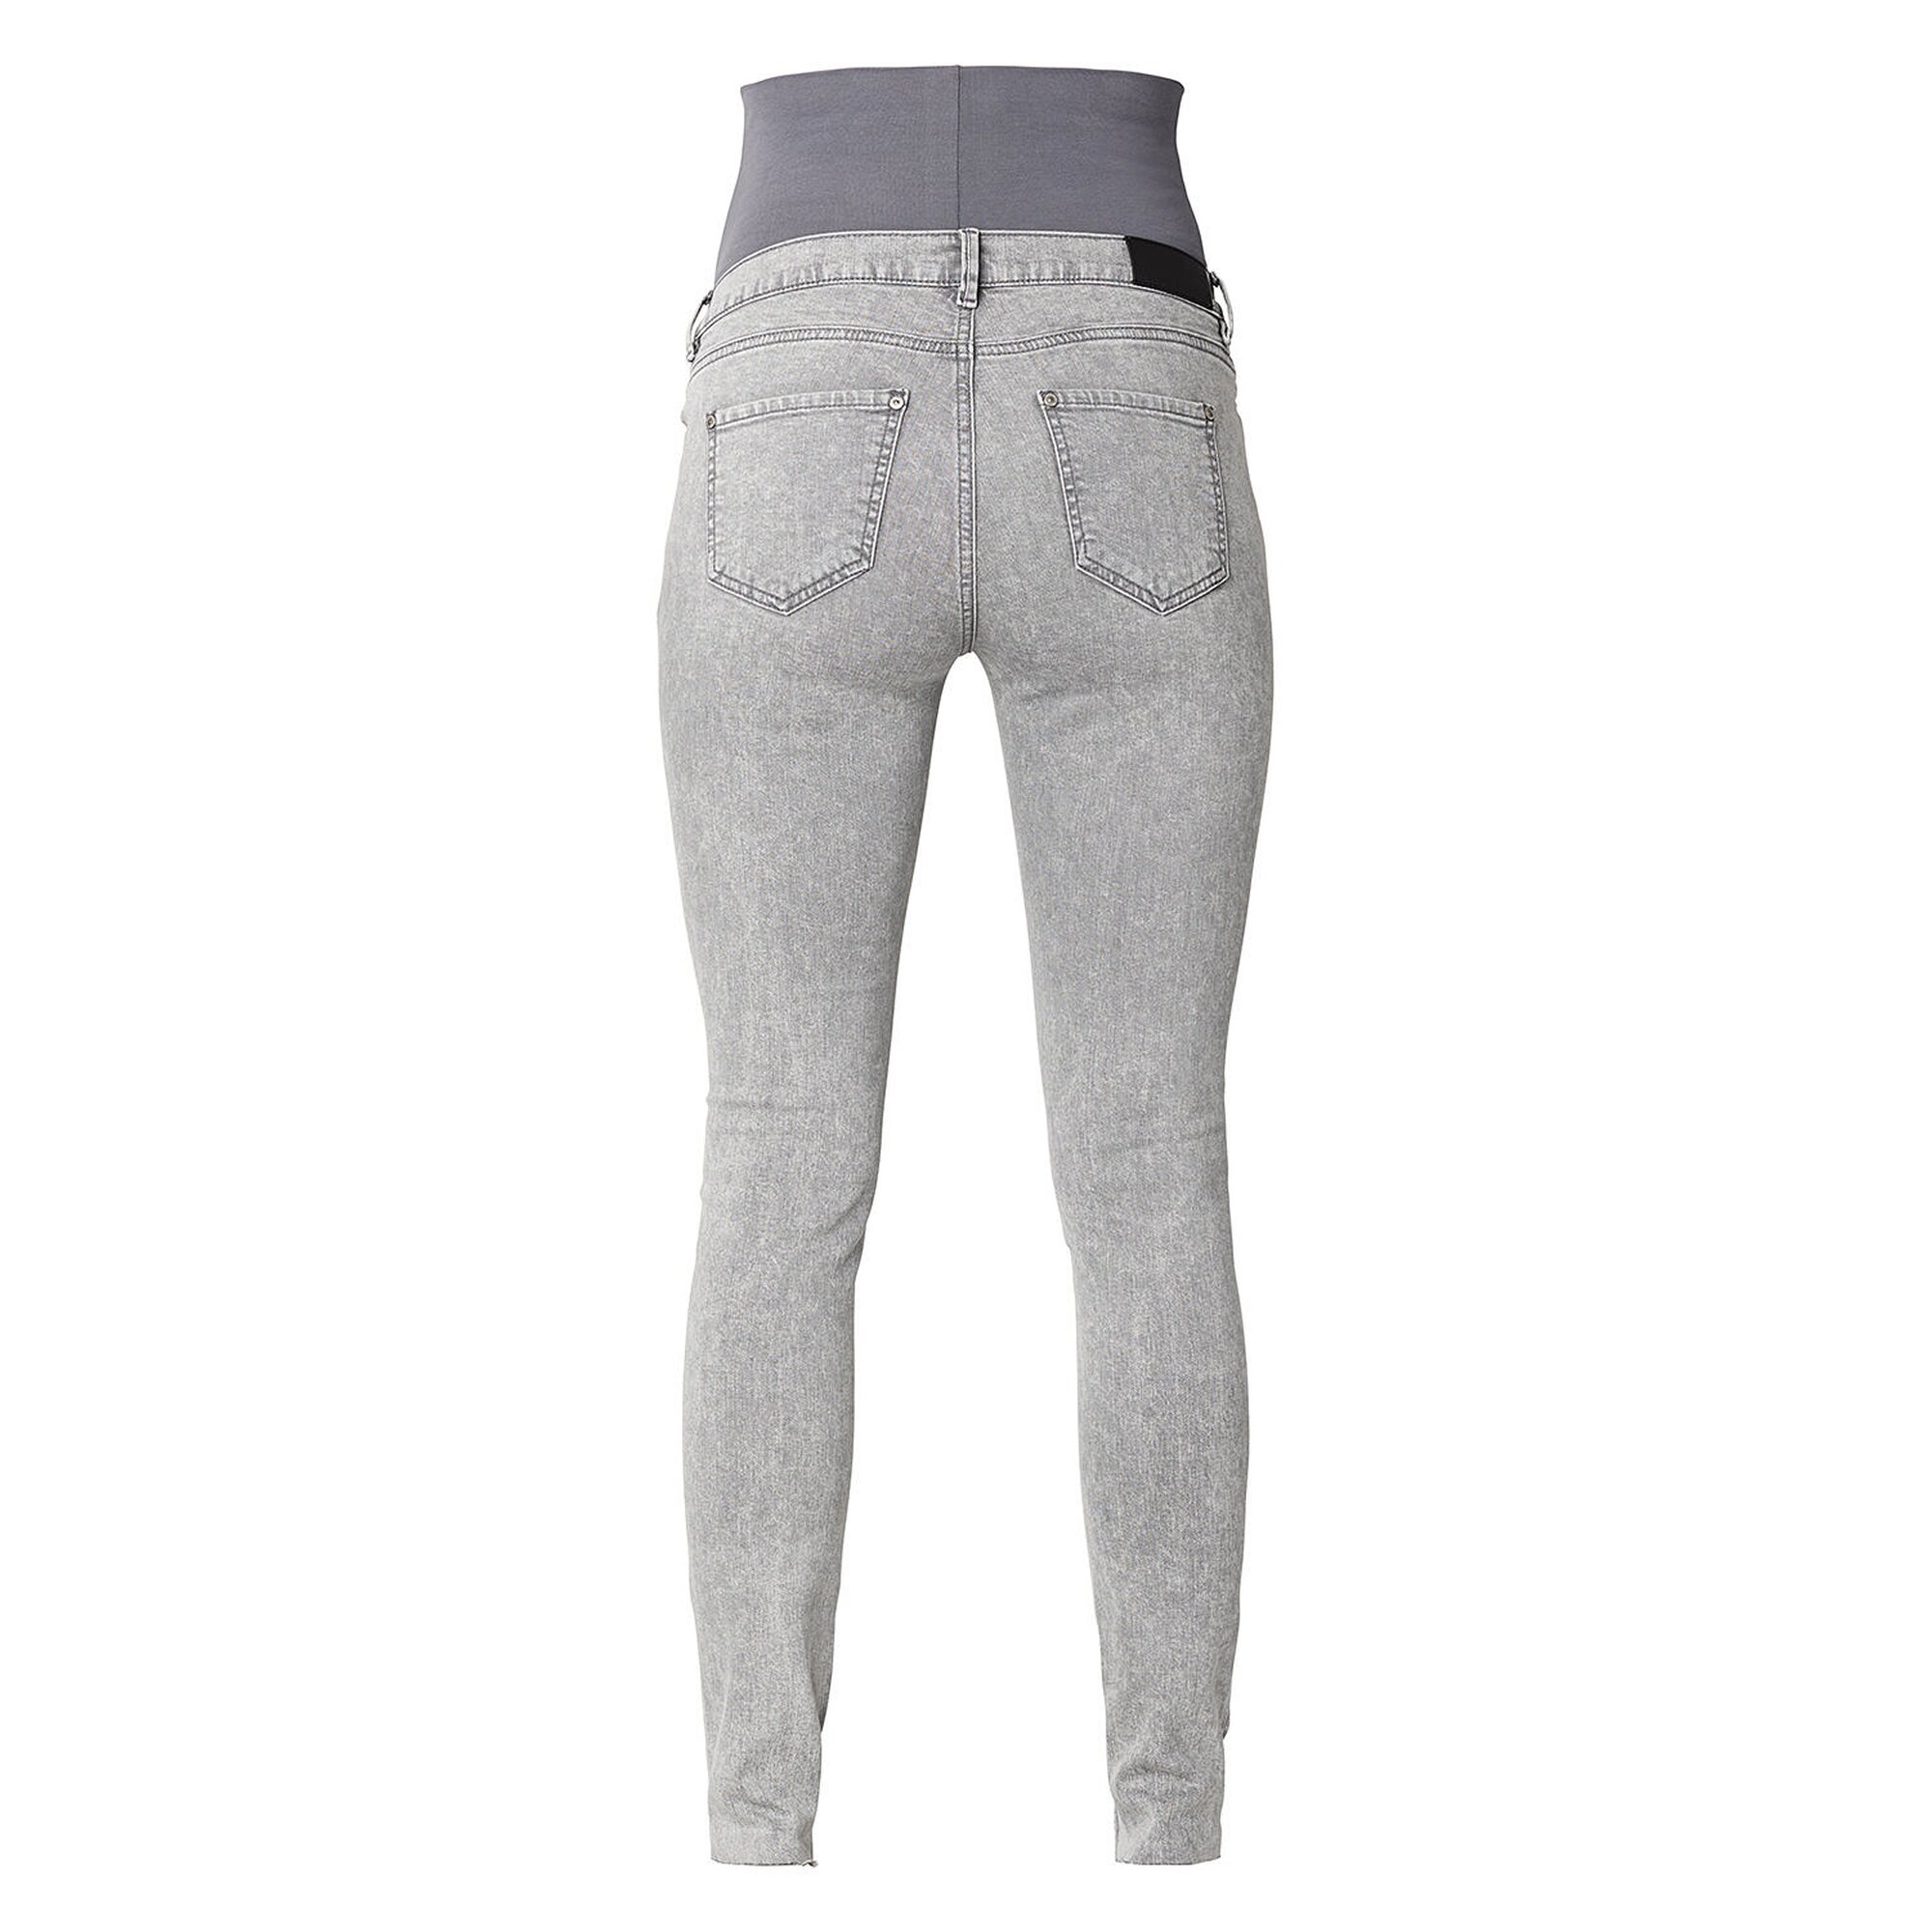 supermom-skinny-umstandsjeans-light-grey, 64.99 EUR @ babywalz-de